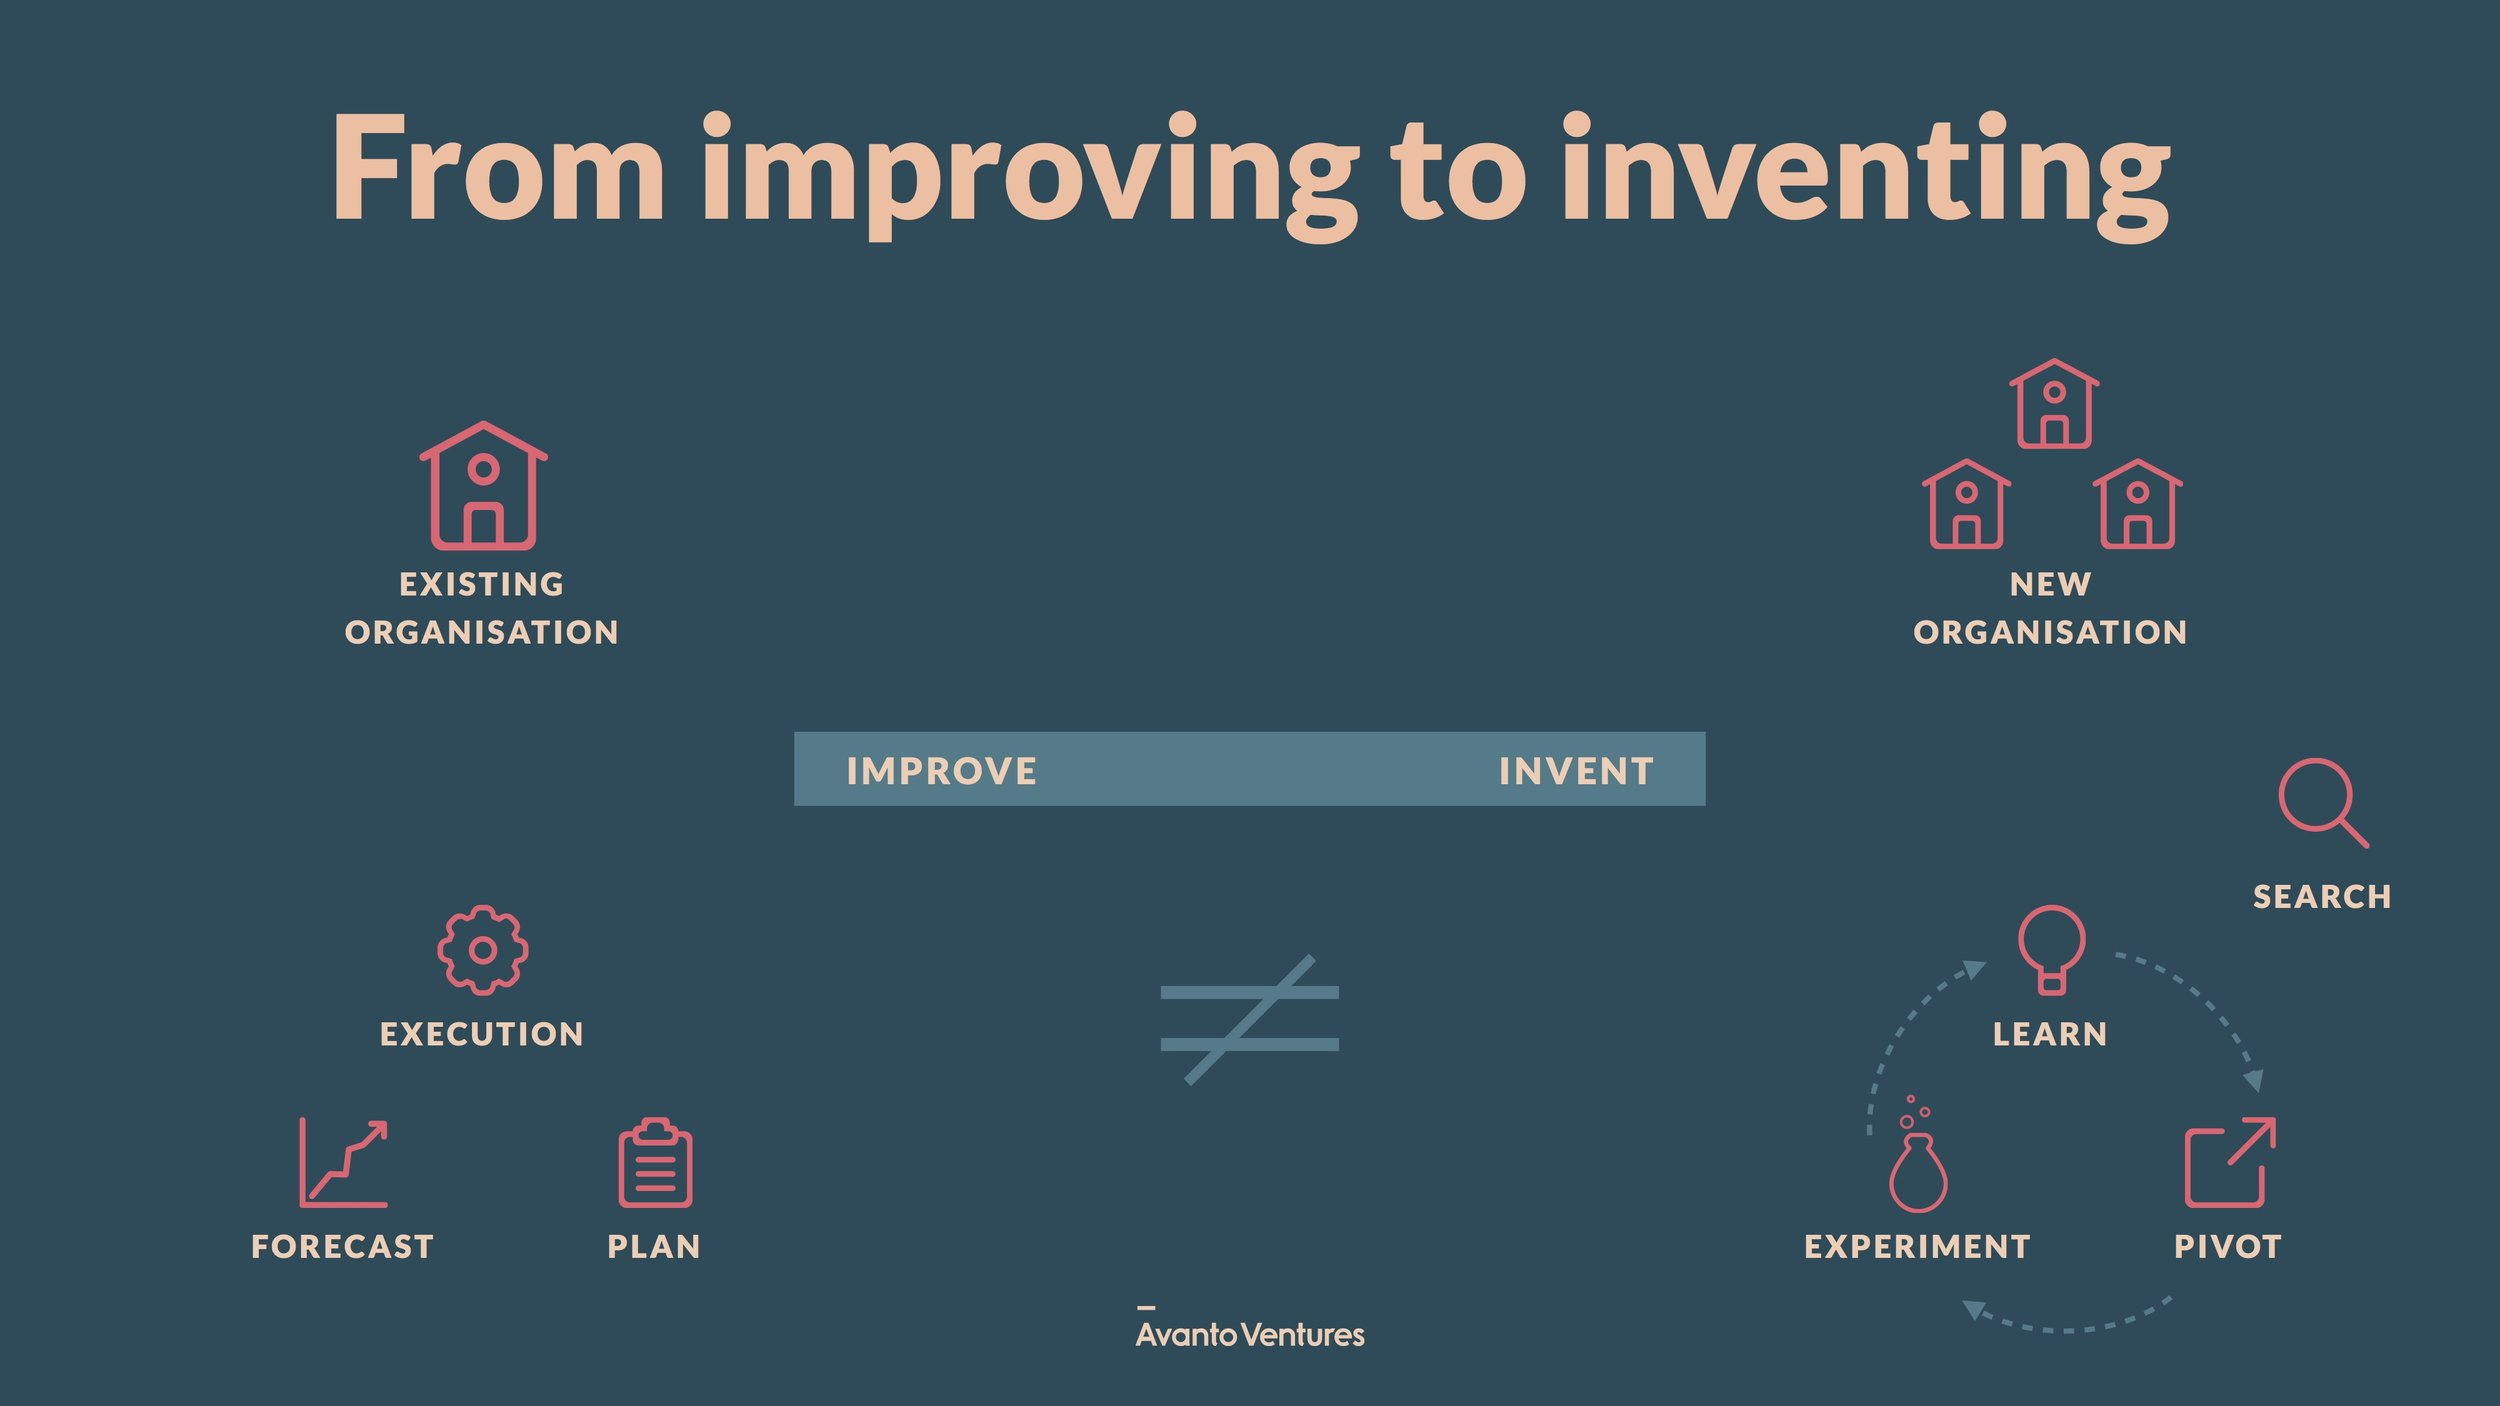 Avanto_Ventures_From_Improving_to_Inventing.jpg